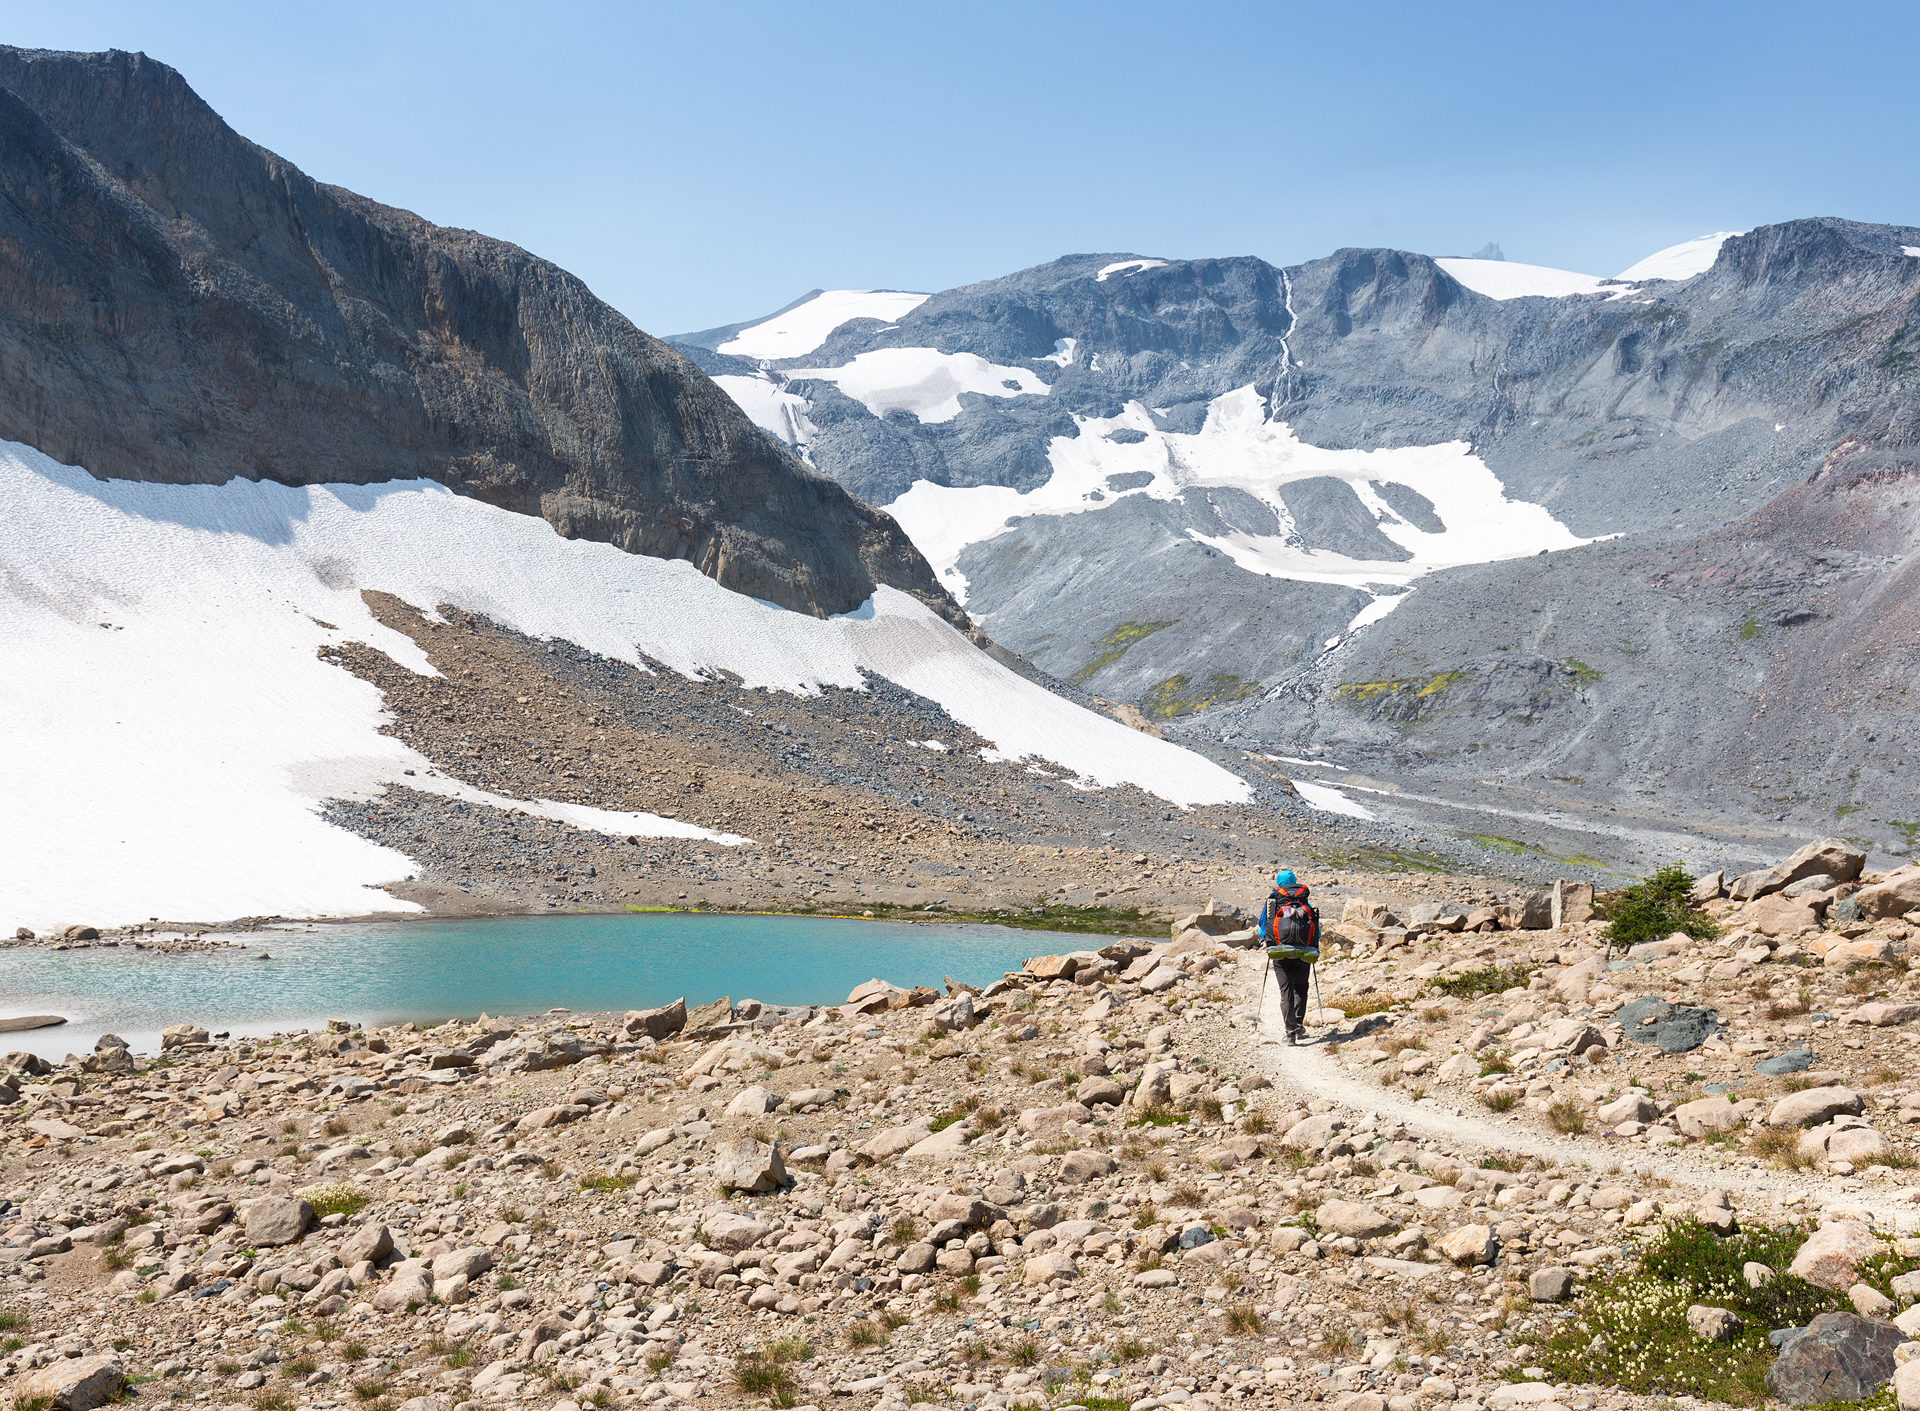 A glacial tarn we passed on the way to Summerland